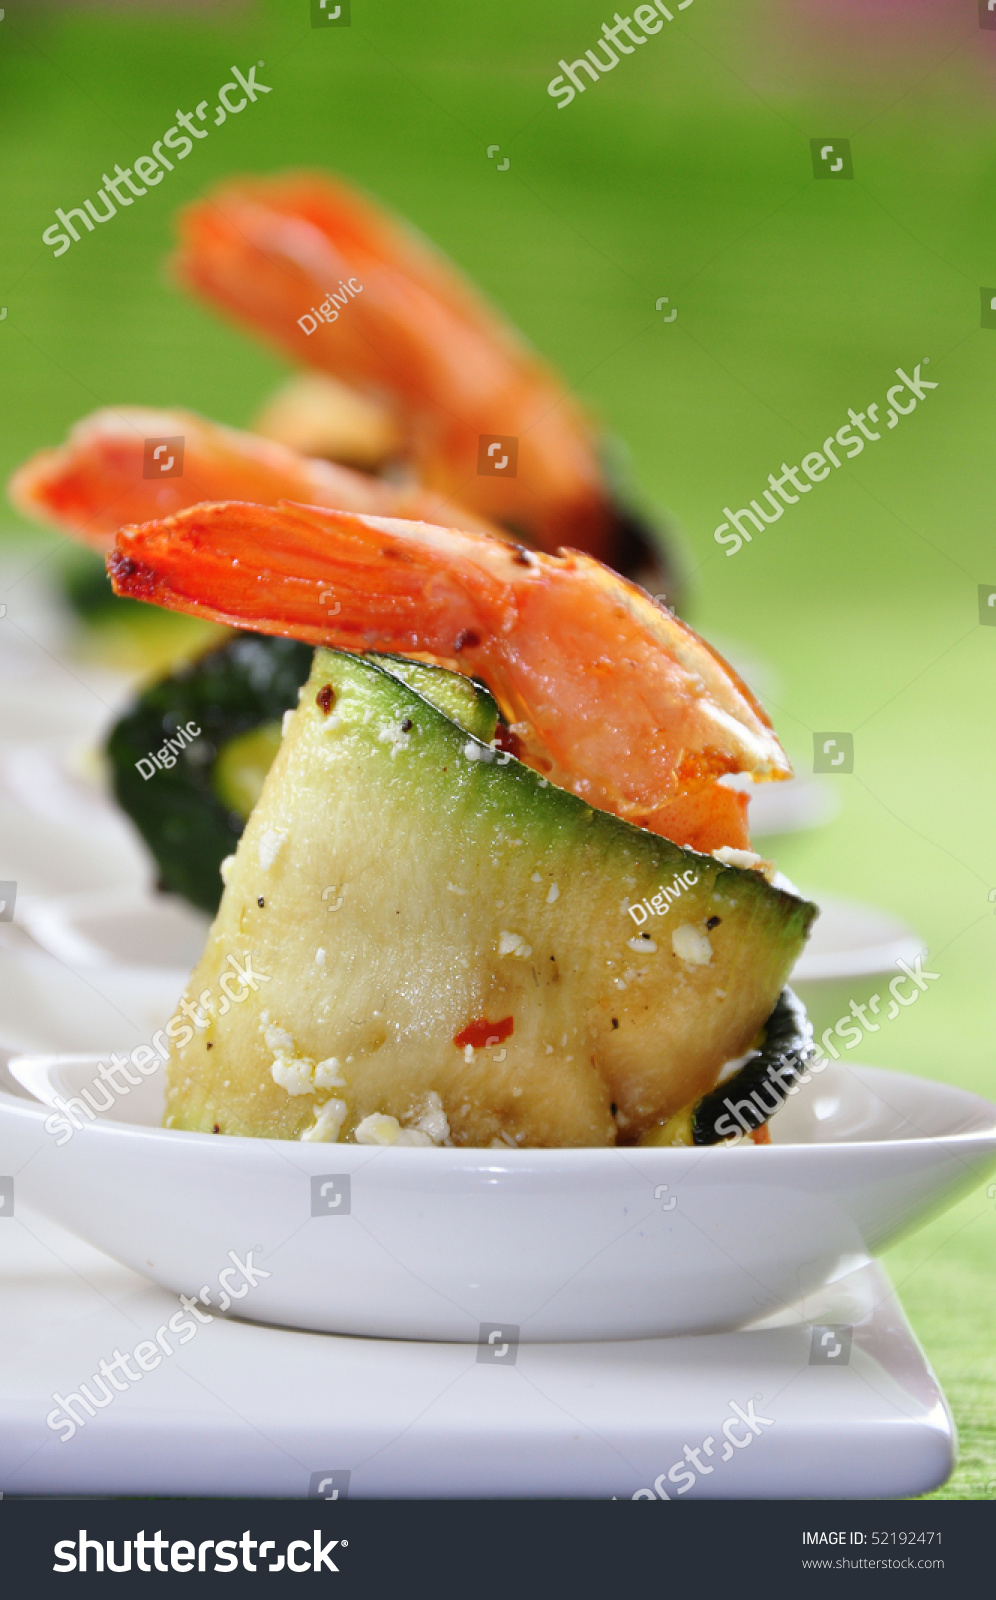 Wrapped Grilled Zucchini With Spicy Shrimp And Feta Cheese Stock Photo ...